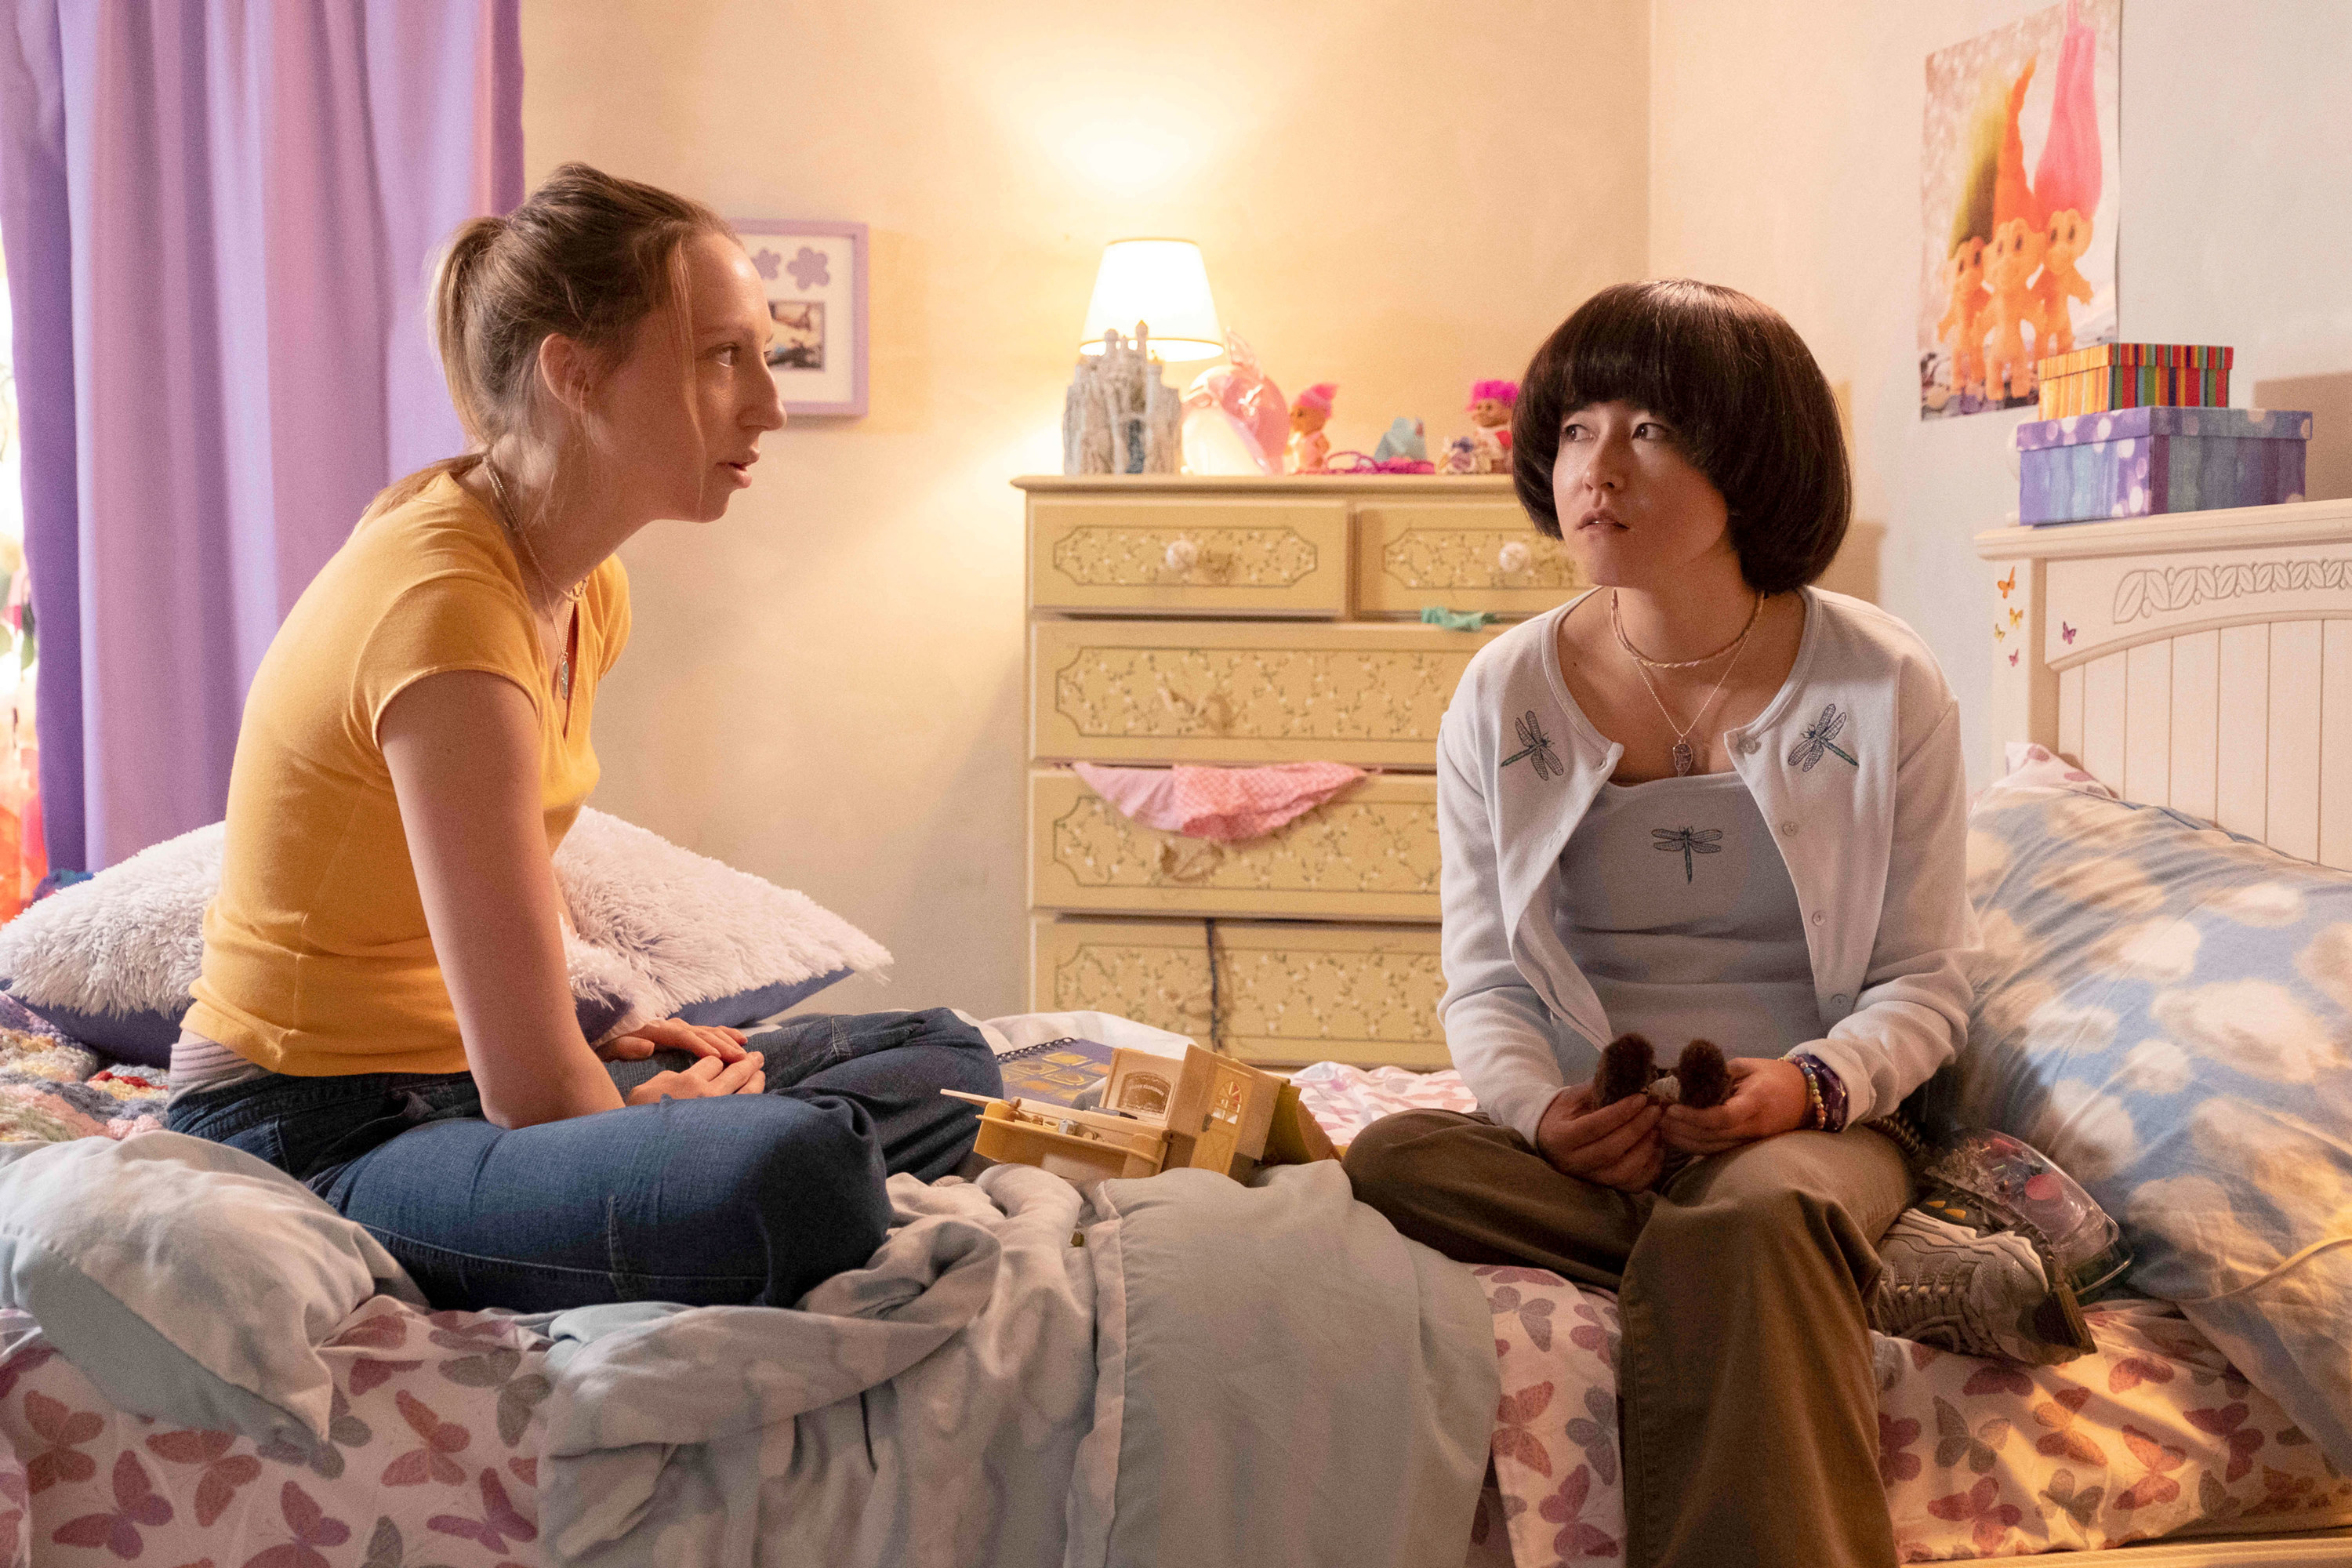 Anna Konkle, in a shirt and blue jeans, sits on a bed across from Maya Erskine, in a top and cardigan with firefly patterns on them